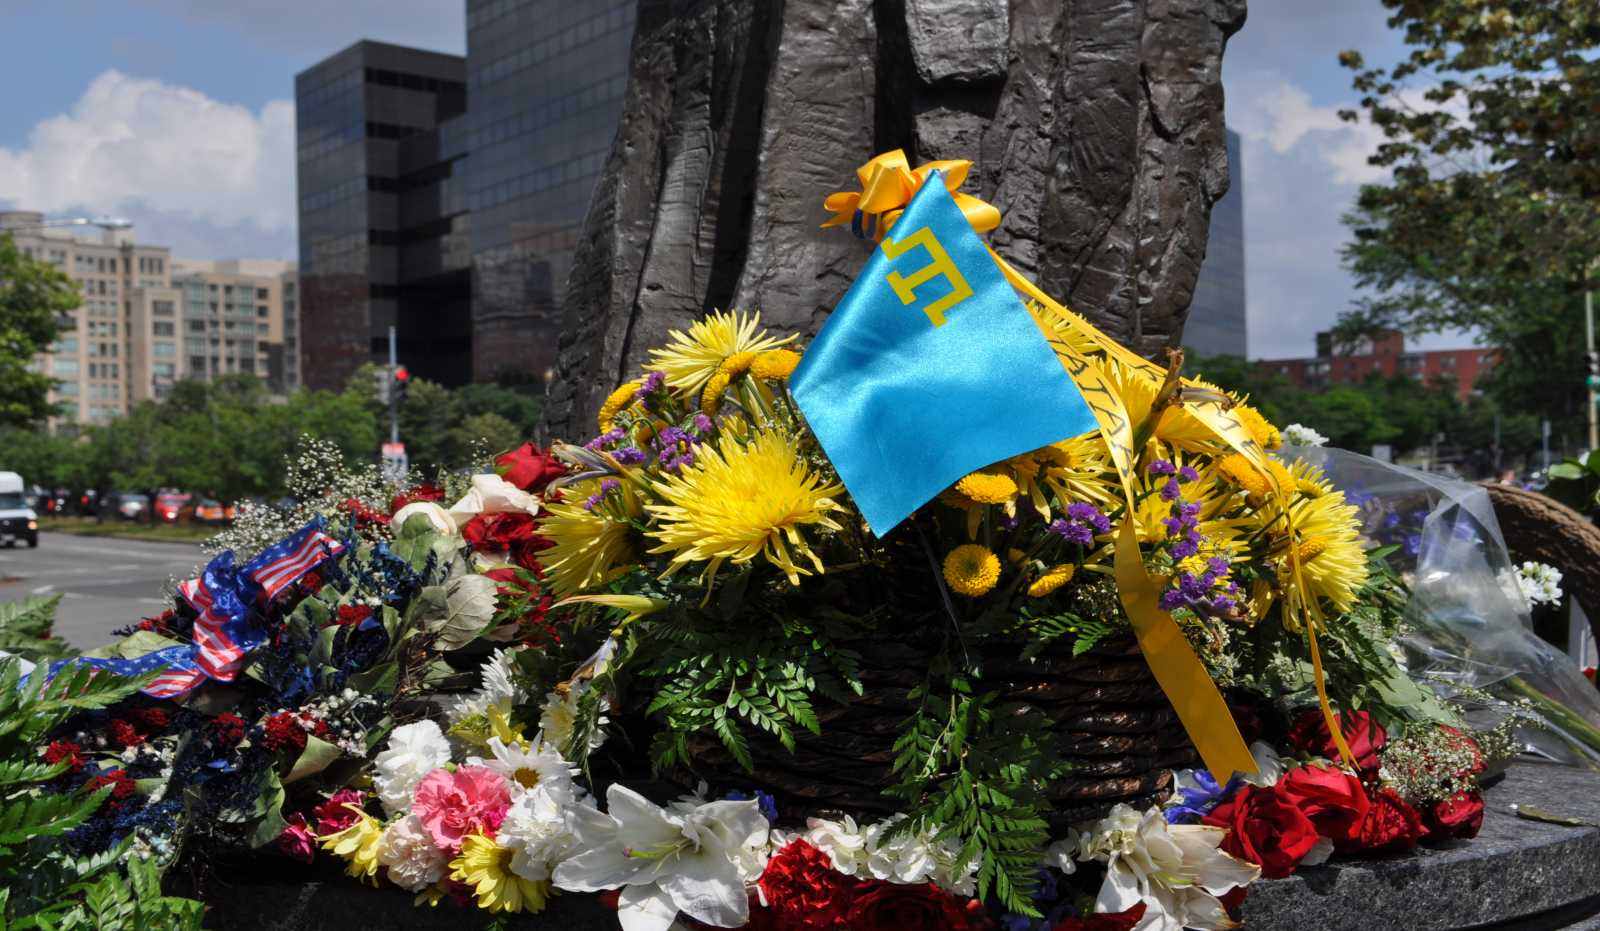 Flowers in memory of Crimean Tatar victims